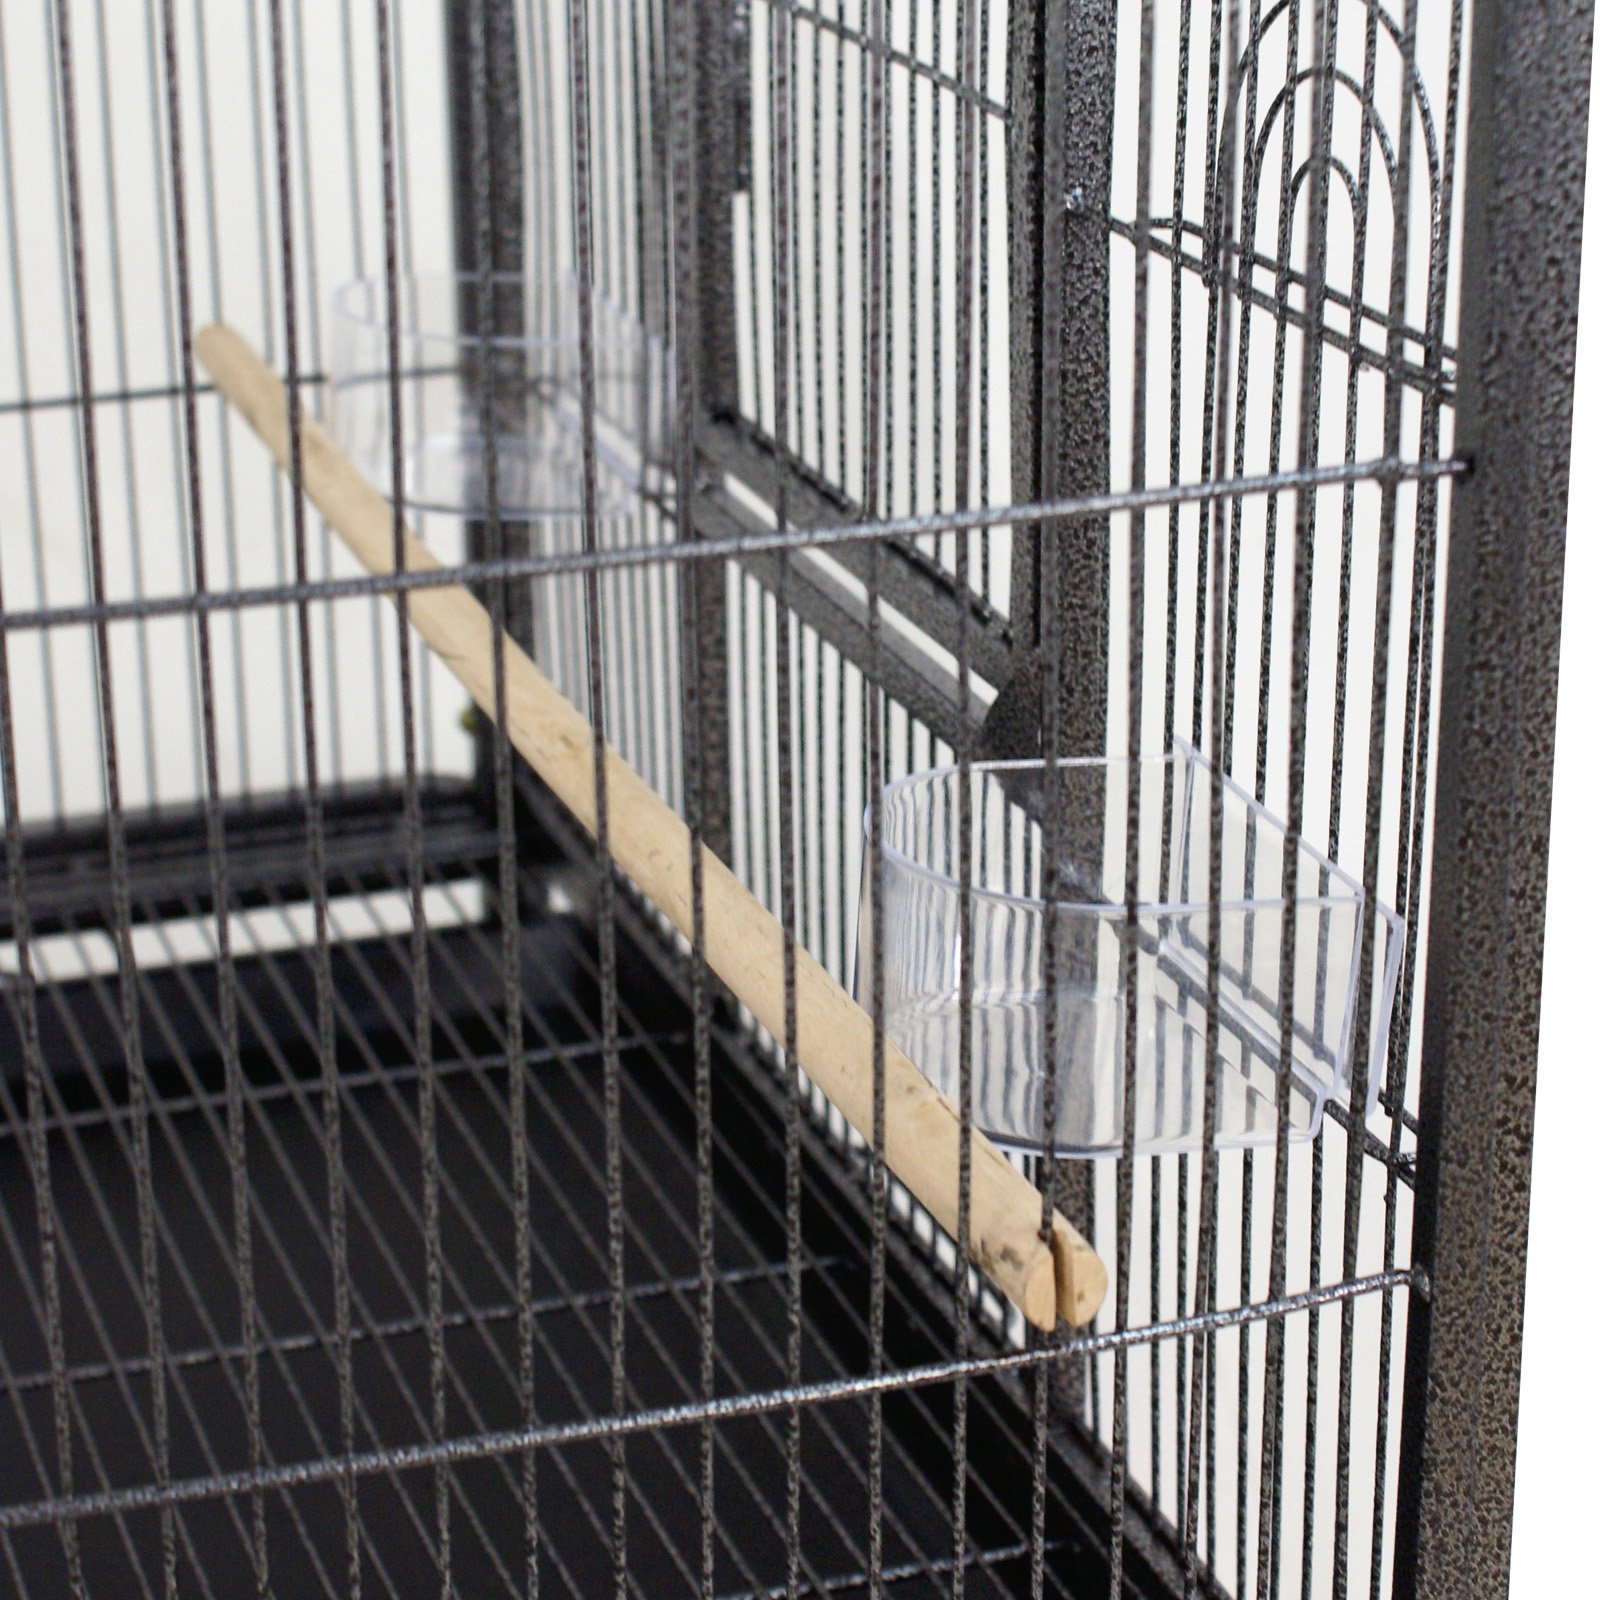 Super Deal 53''/61''/68'' Large Bird Cage Play Top Parrot Chinchilla Cage Macaw Cockatiel Cockatoo Pet House, 53 inch by SuperDealUsa (Image #6)